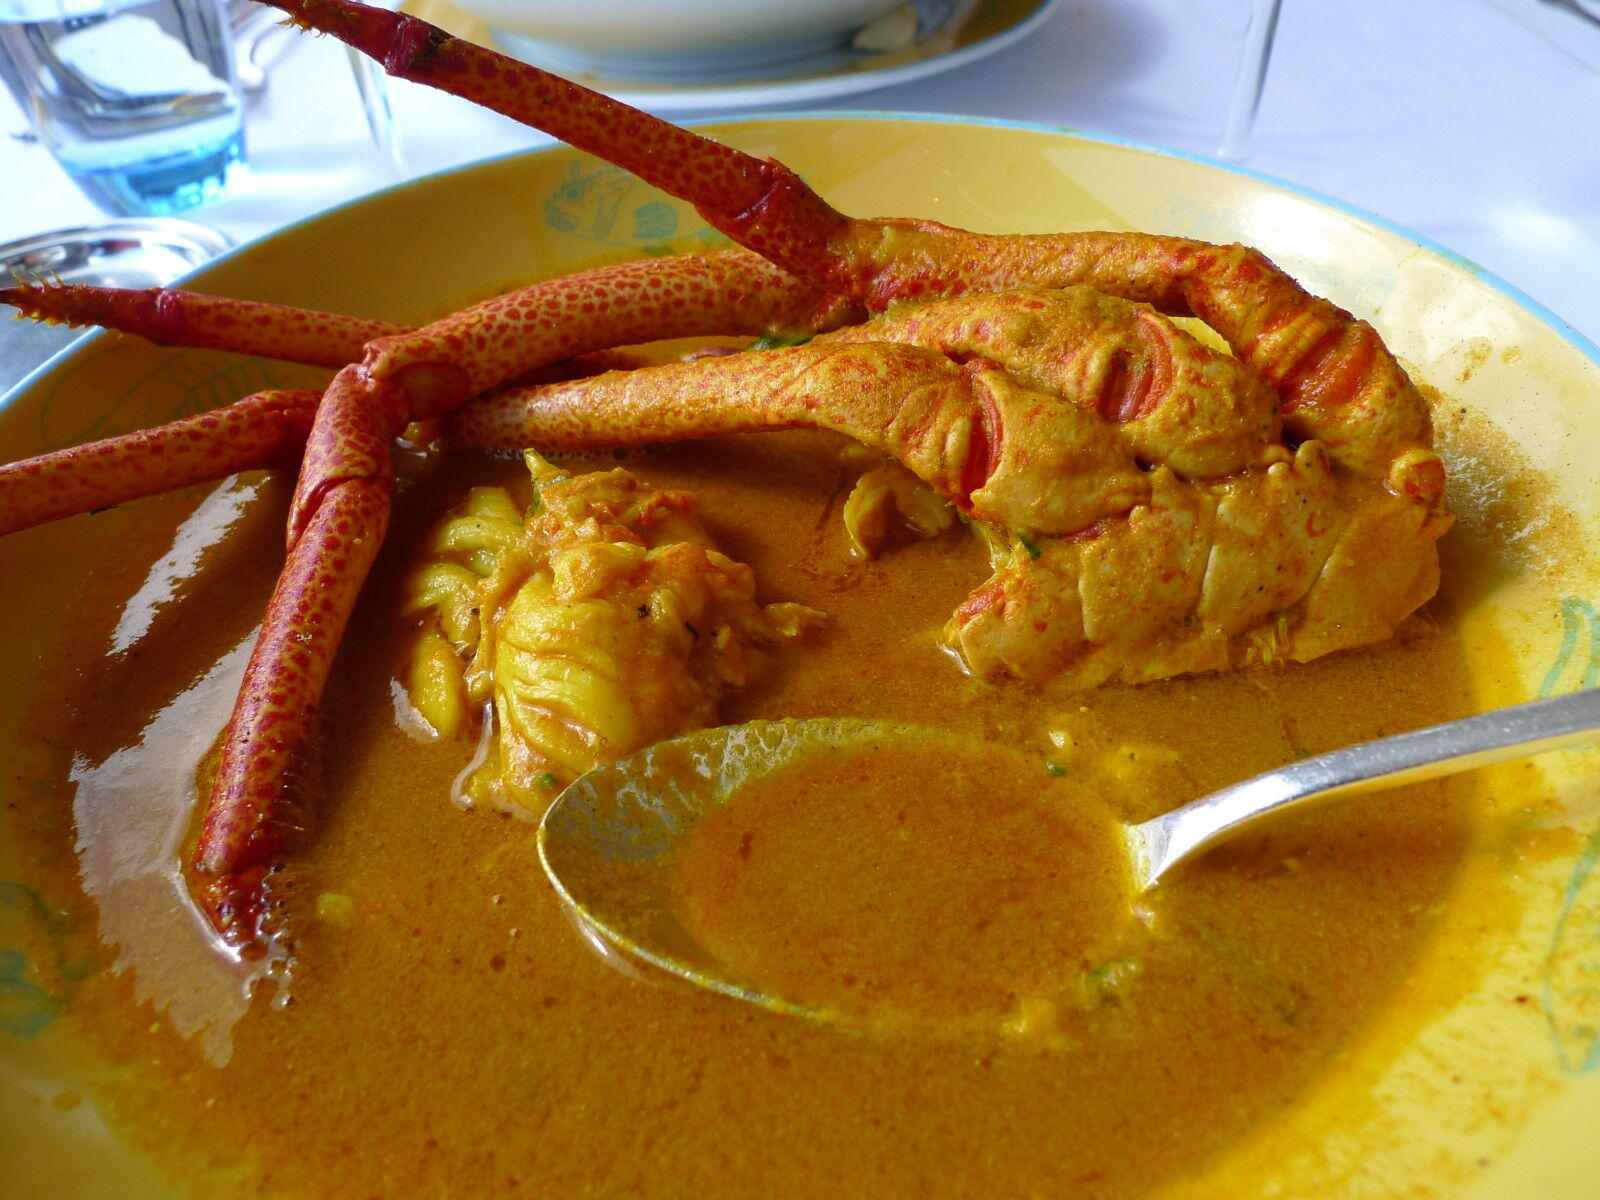 ... Ginger and Nutmeg's blog post: The Real Bouillabaisse of Marseille